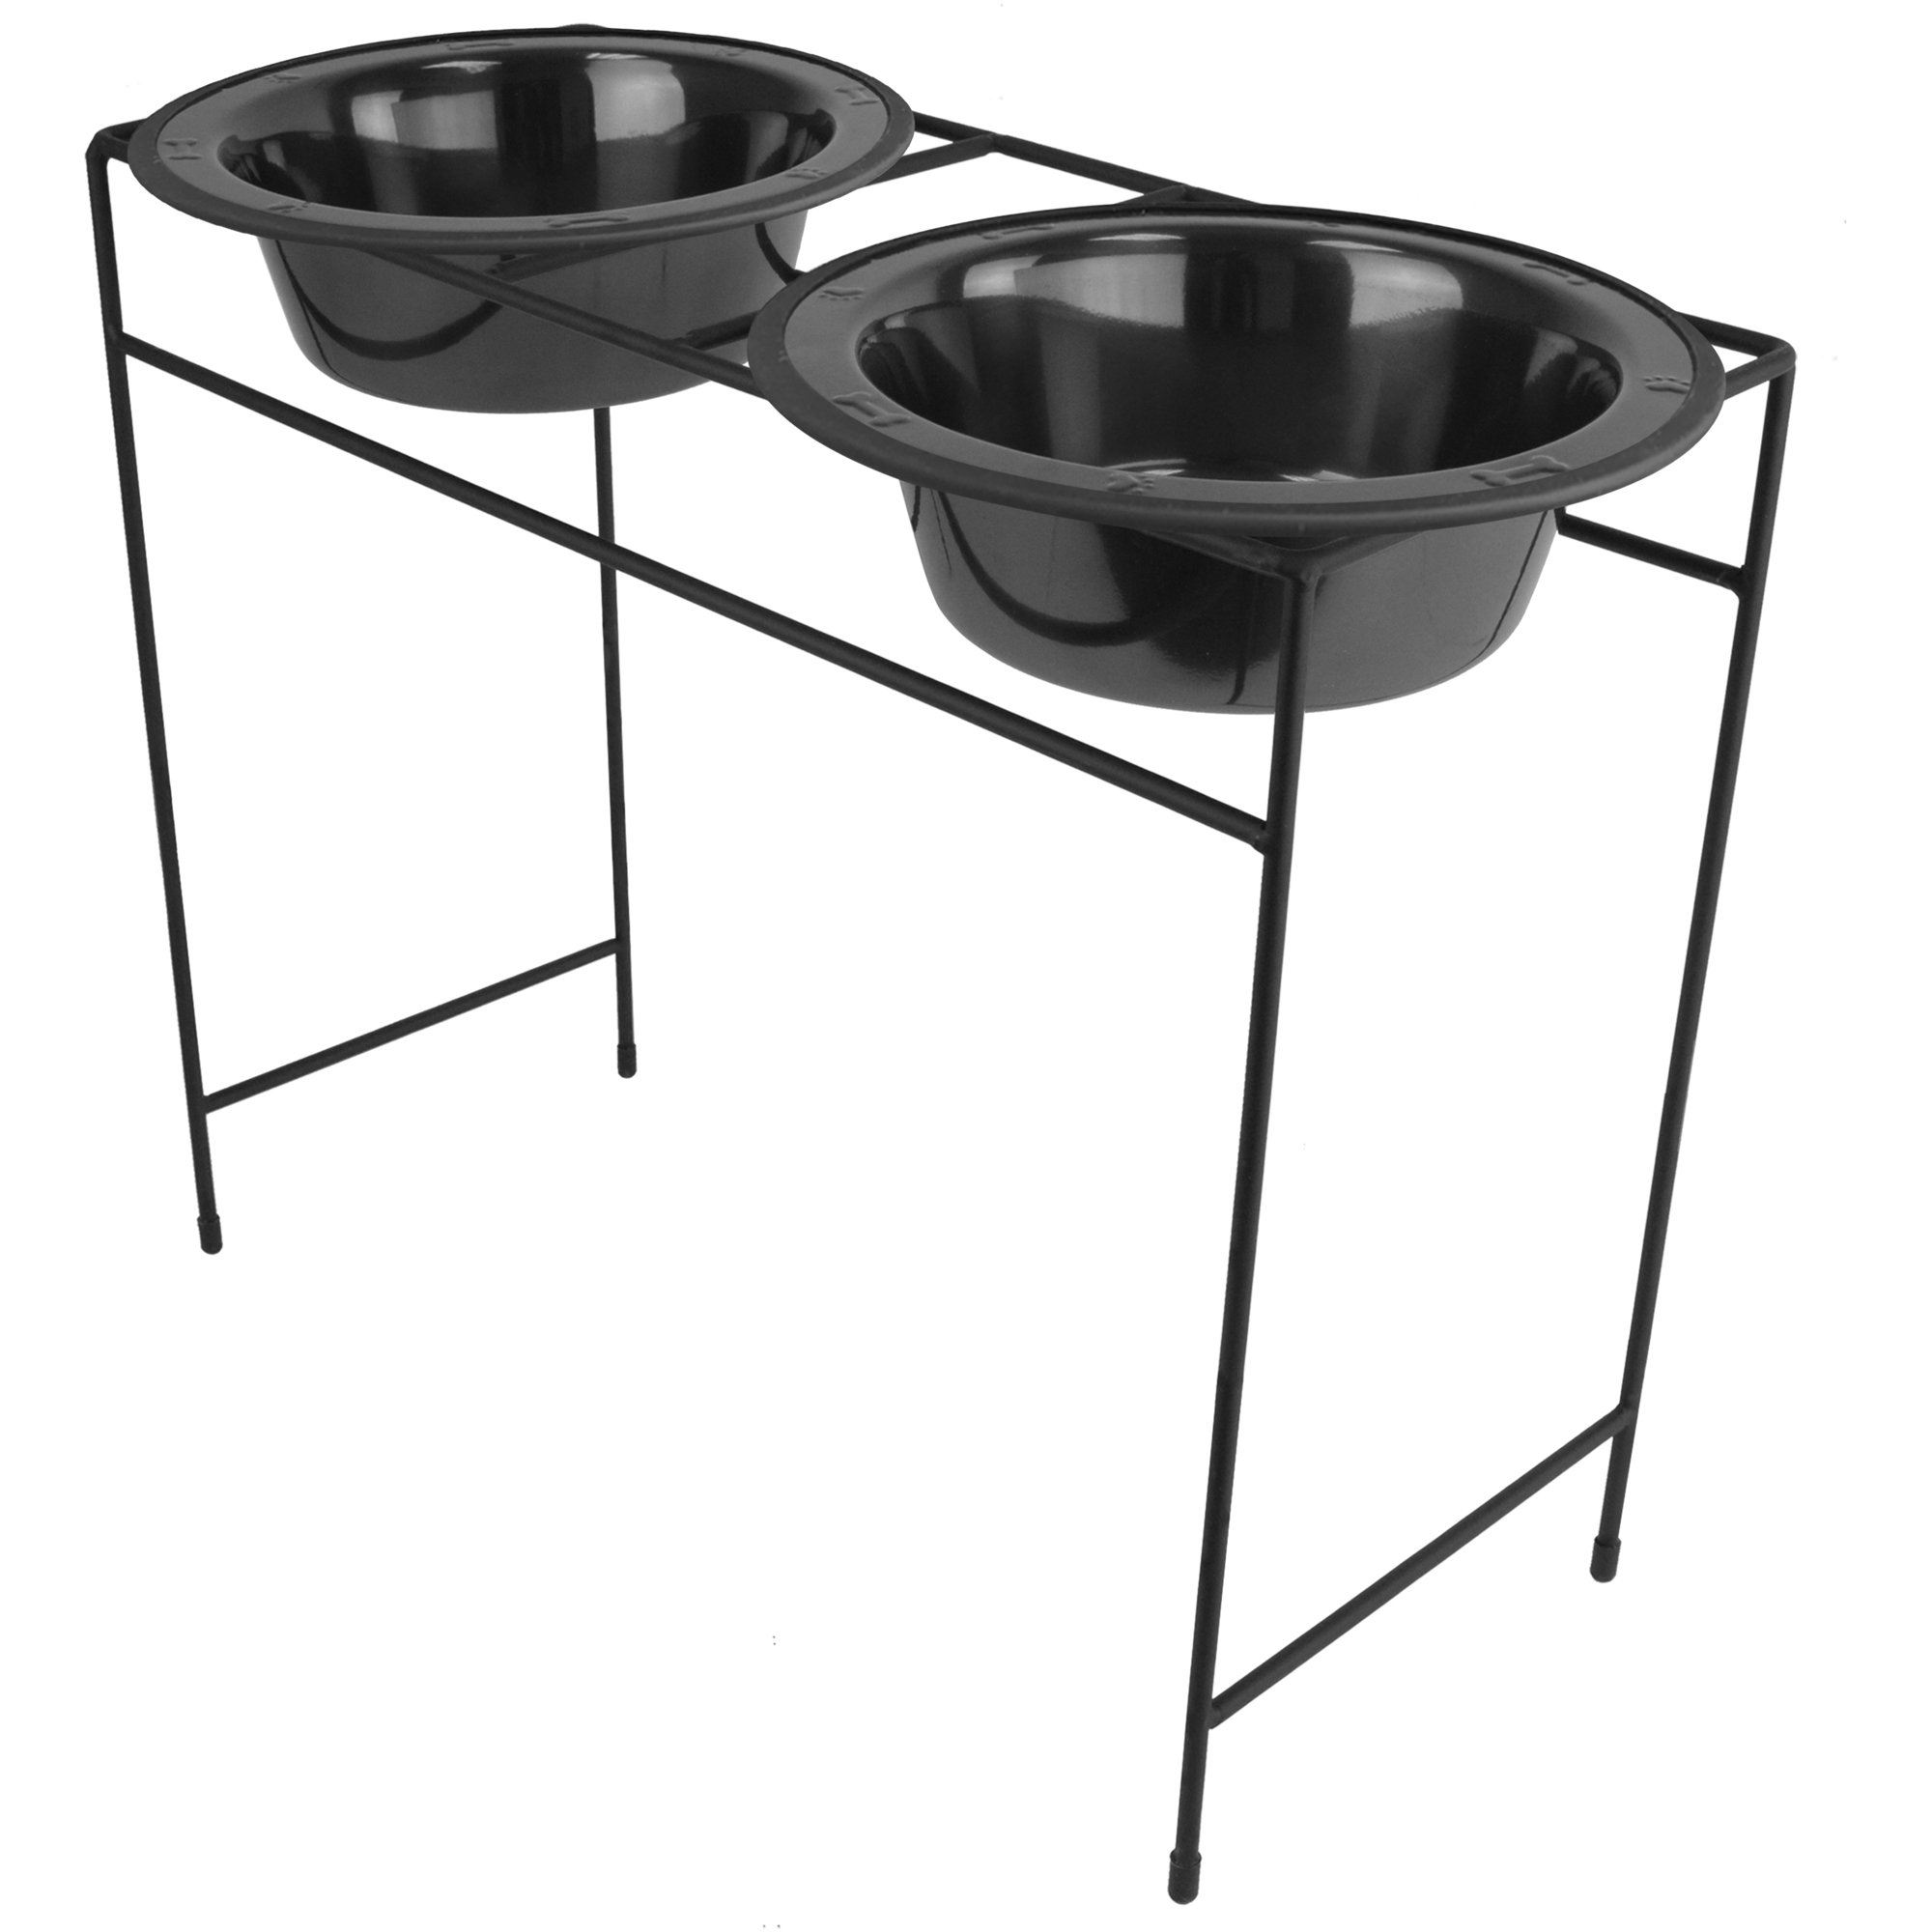 Platinum Pets Double Diner Feeder with Stainless Steel Dog Bowls, 10 cup/80 oz, Midnight Black